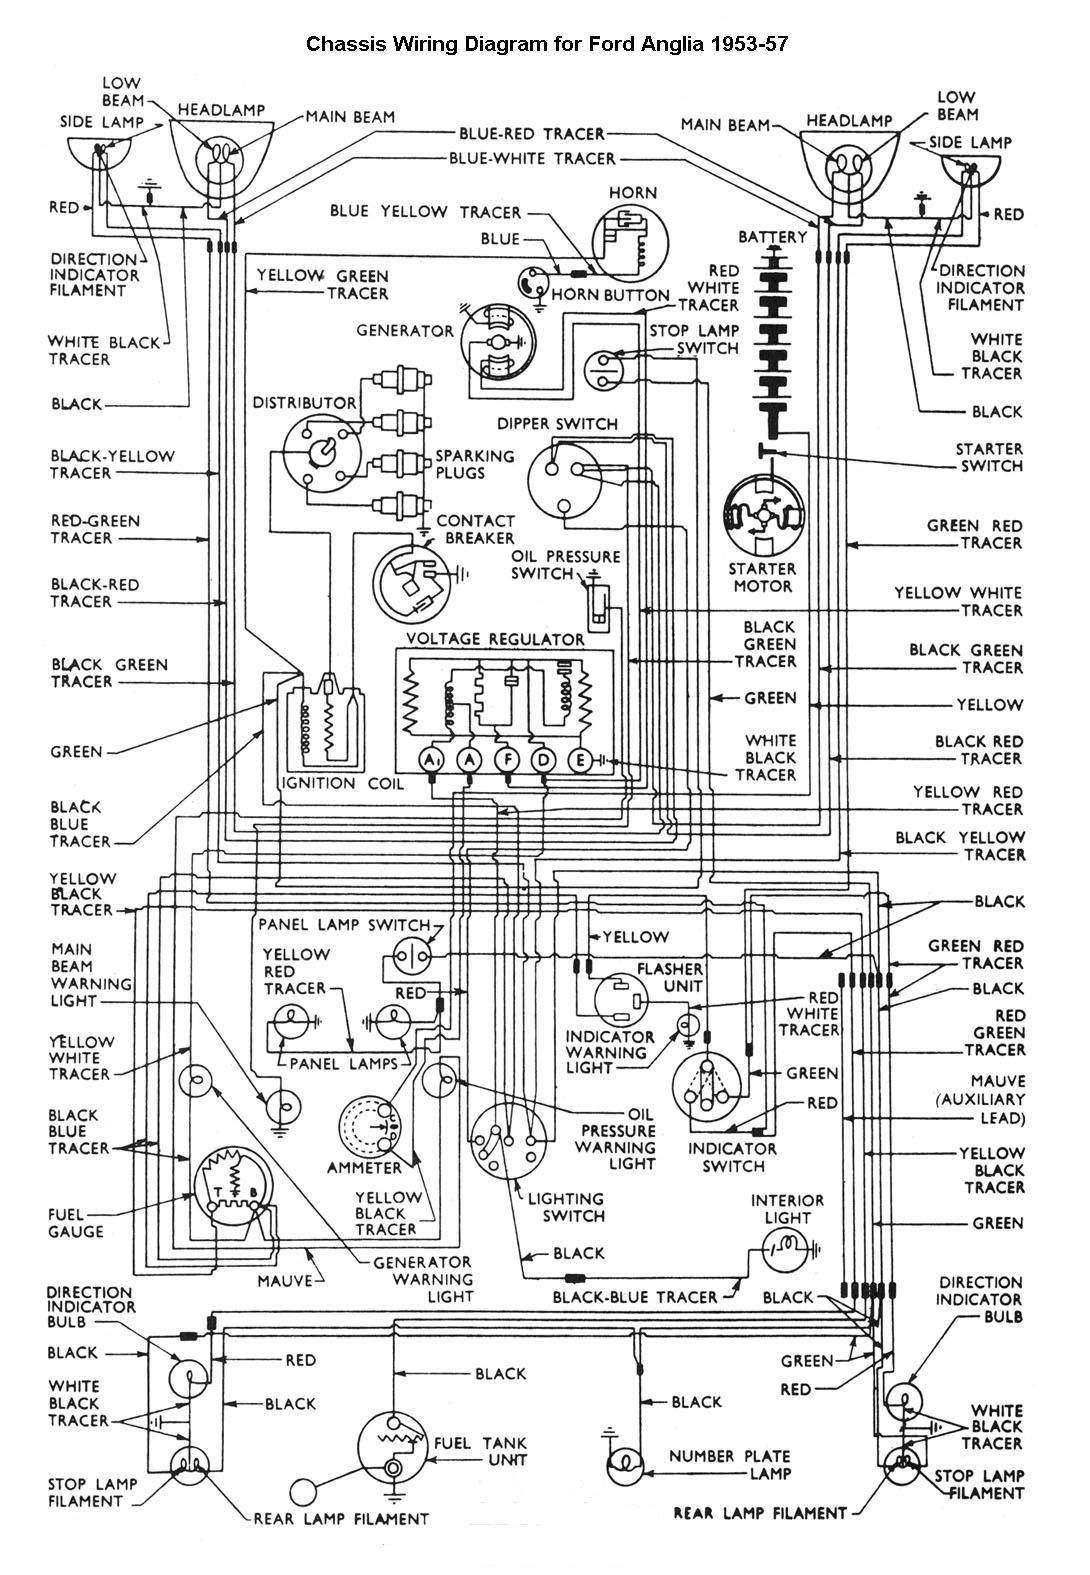 car wire diagram car stereo diagram car image wiring diagram club 2001 audi a8l interior car wiring diagram auto repair cars car wiring diagram